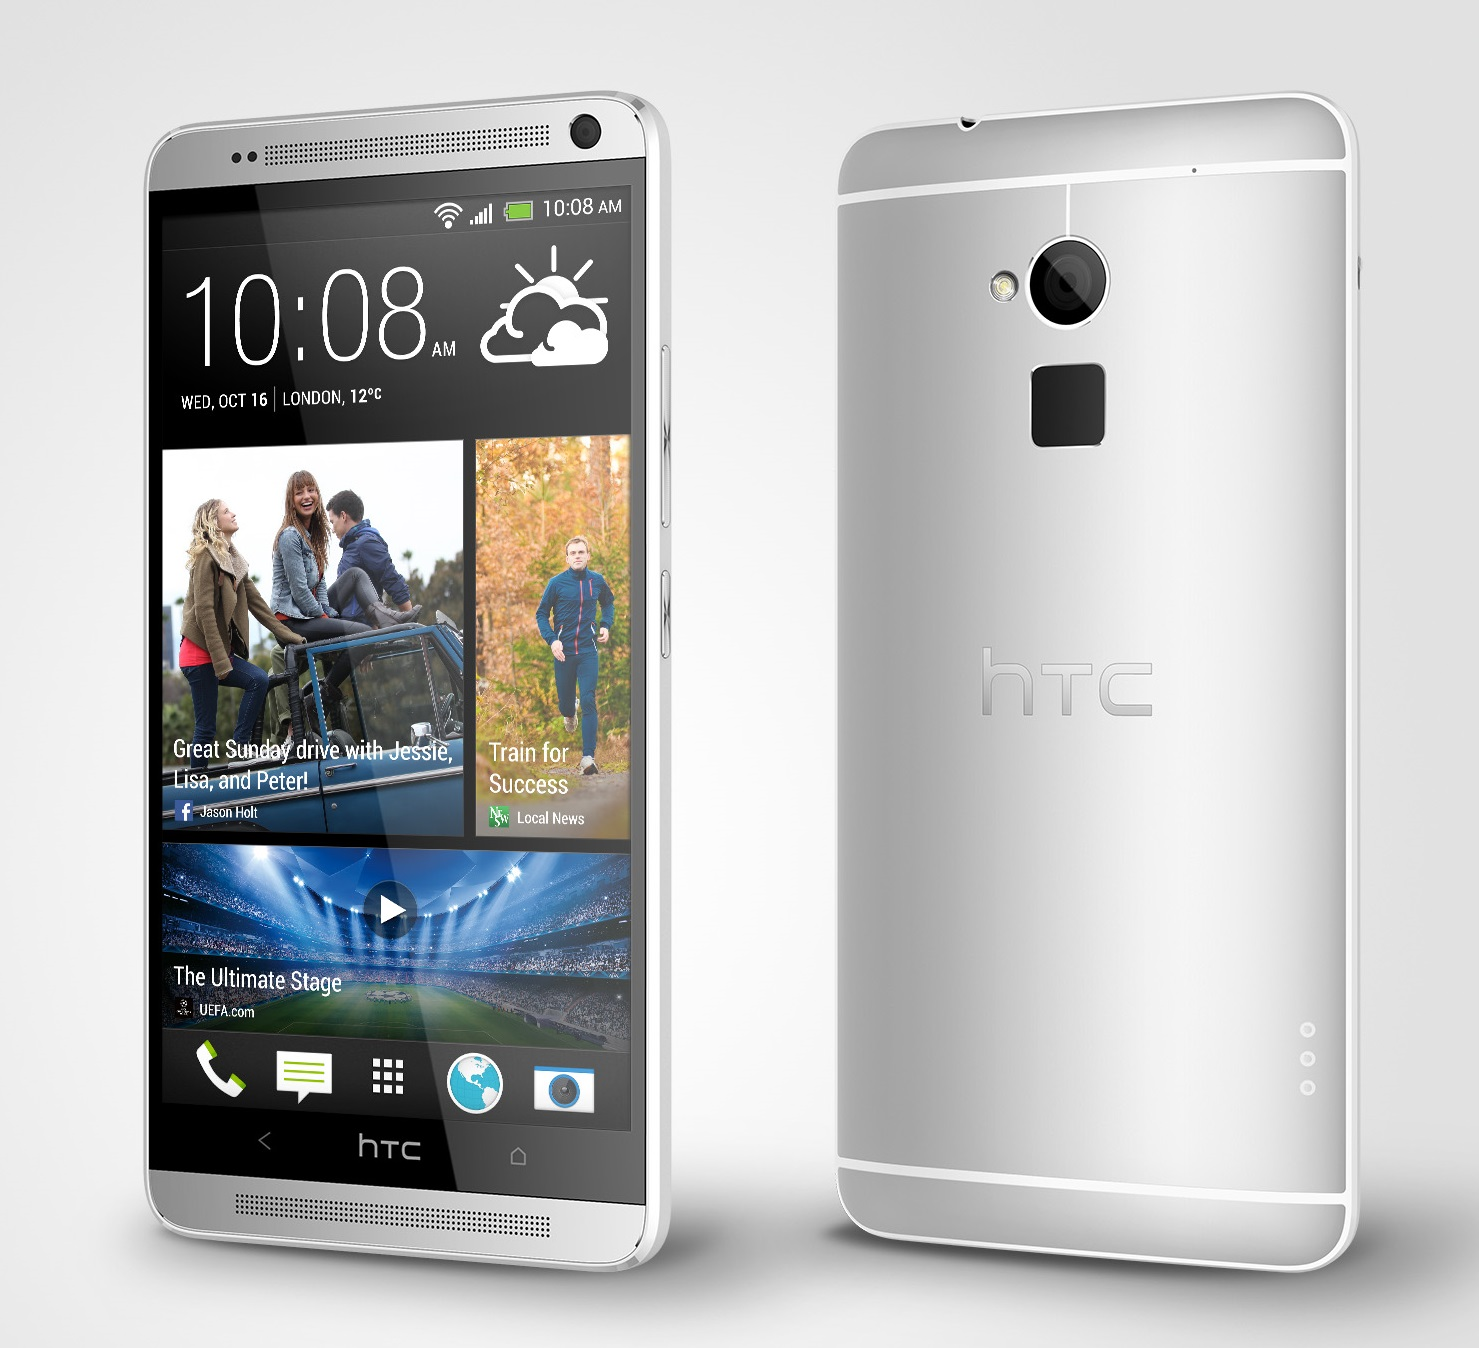 HTC One max Glacial Silver Perspective Right HTC introduces One max with fingerprint sensor, 5.9 inch display and Sense 5.5